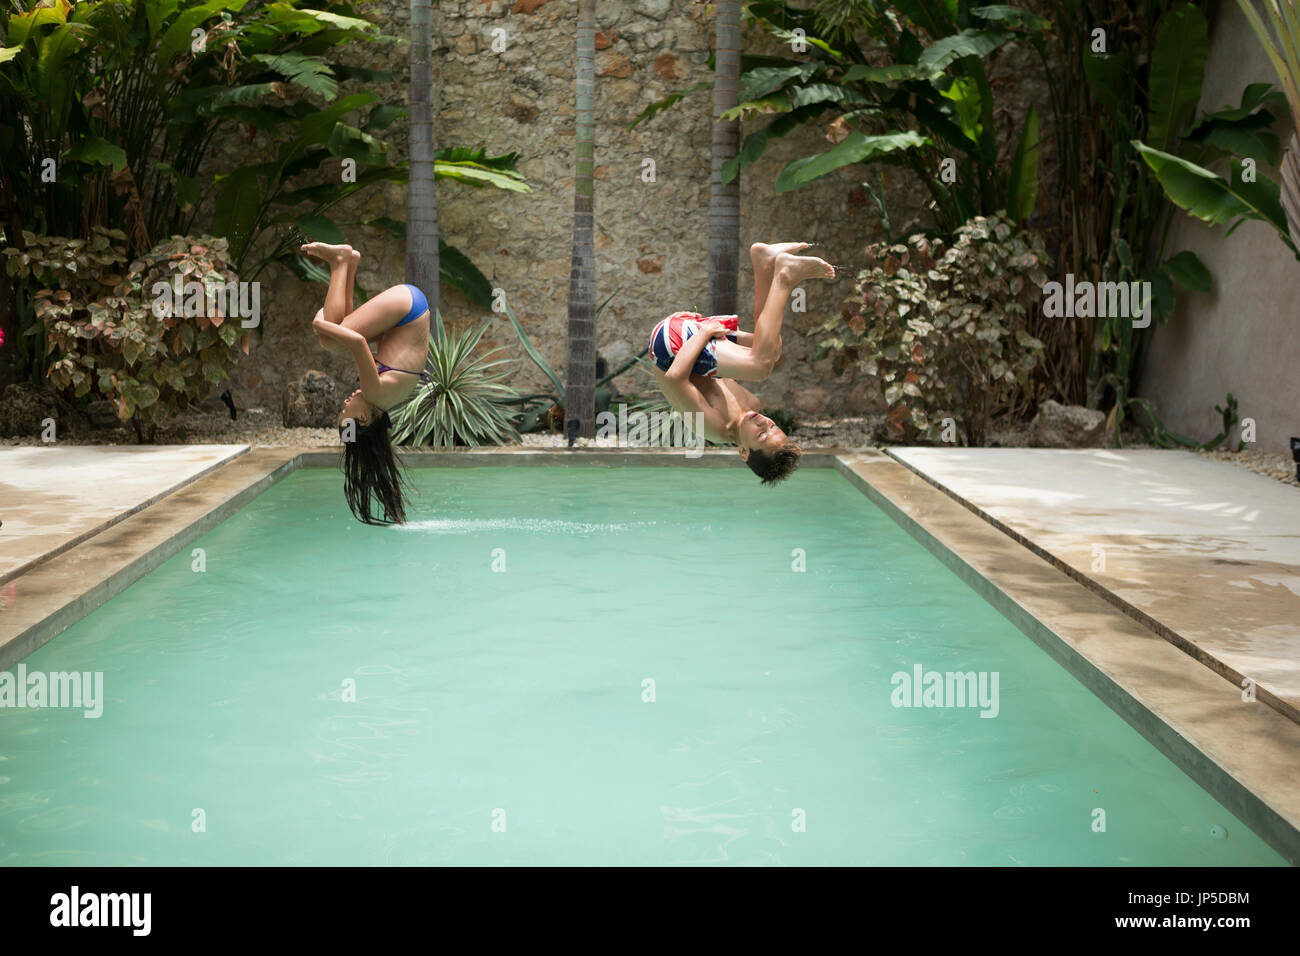 Two children in mid air, somersaulting backwards into a swimming pool. Stock Photo